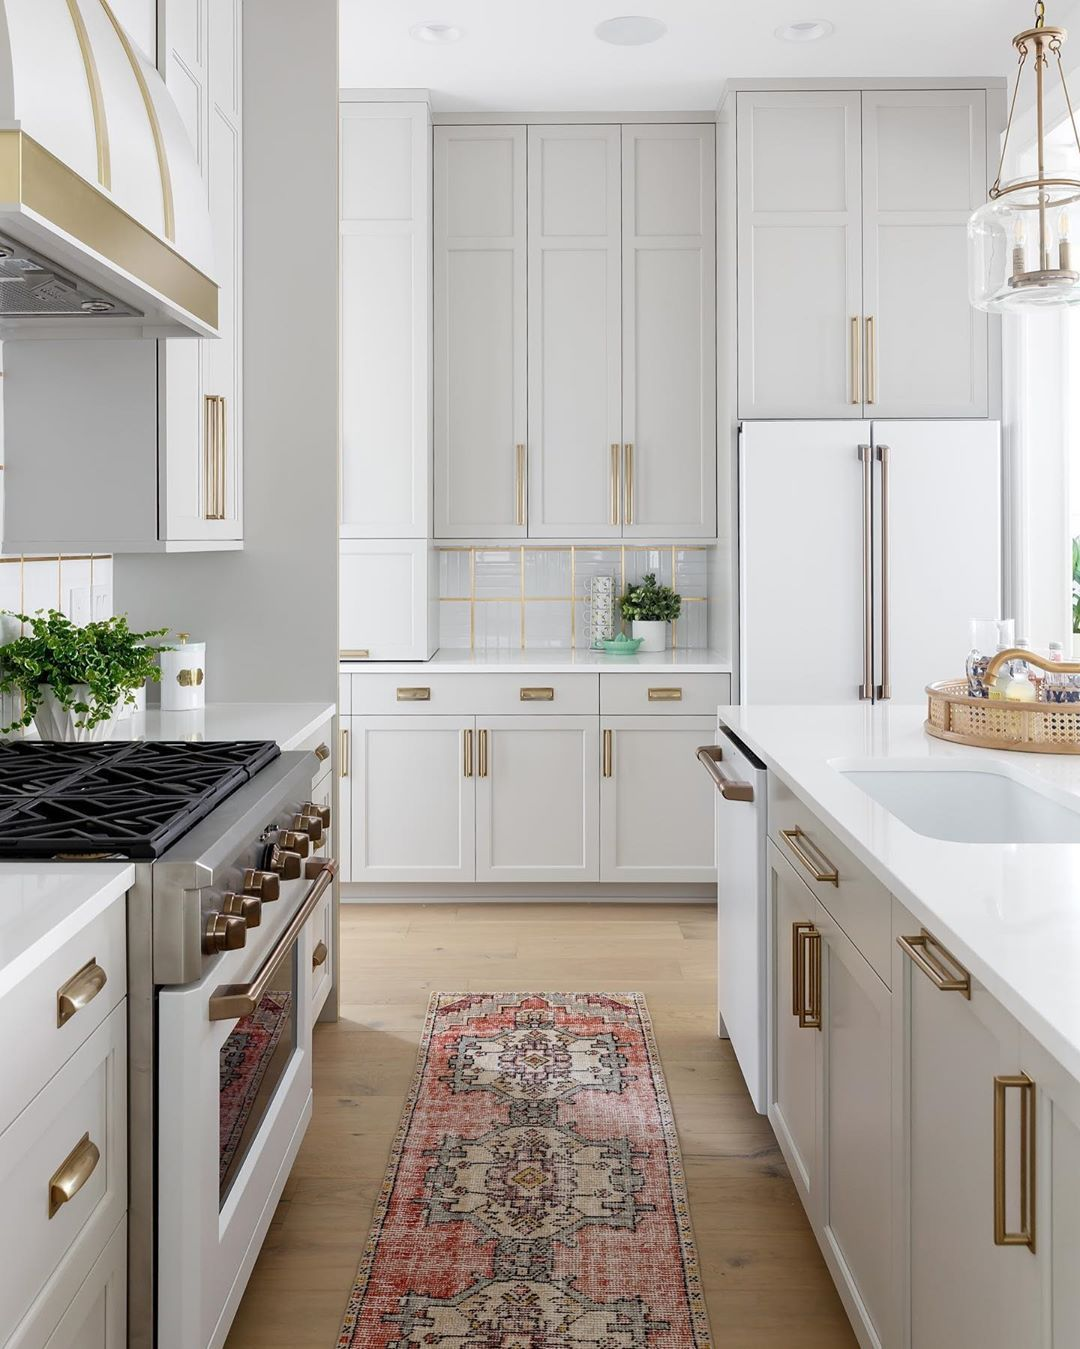 J A S O N B L A C K On Instagram Do You Like The Cabinets Going To The Ceiling Lik White Kitchen Interior Design White Kitchen Interior Kitchen Dinning Room